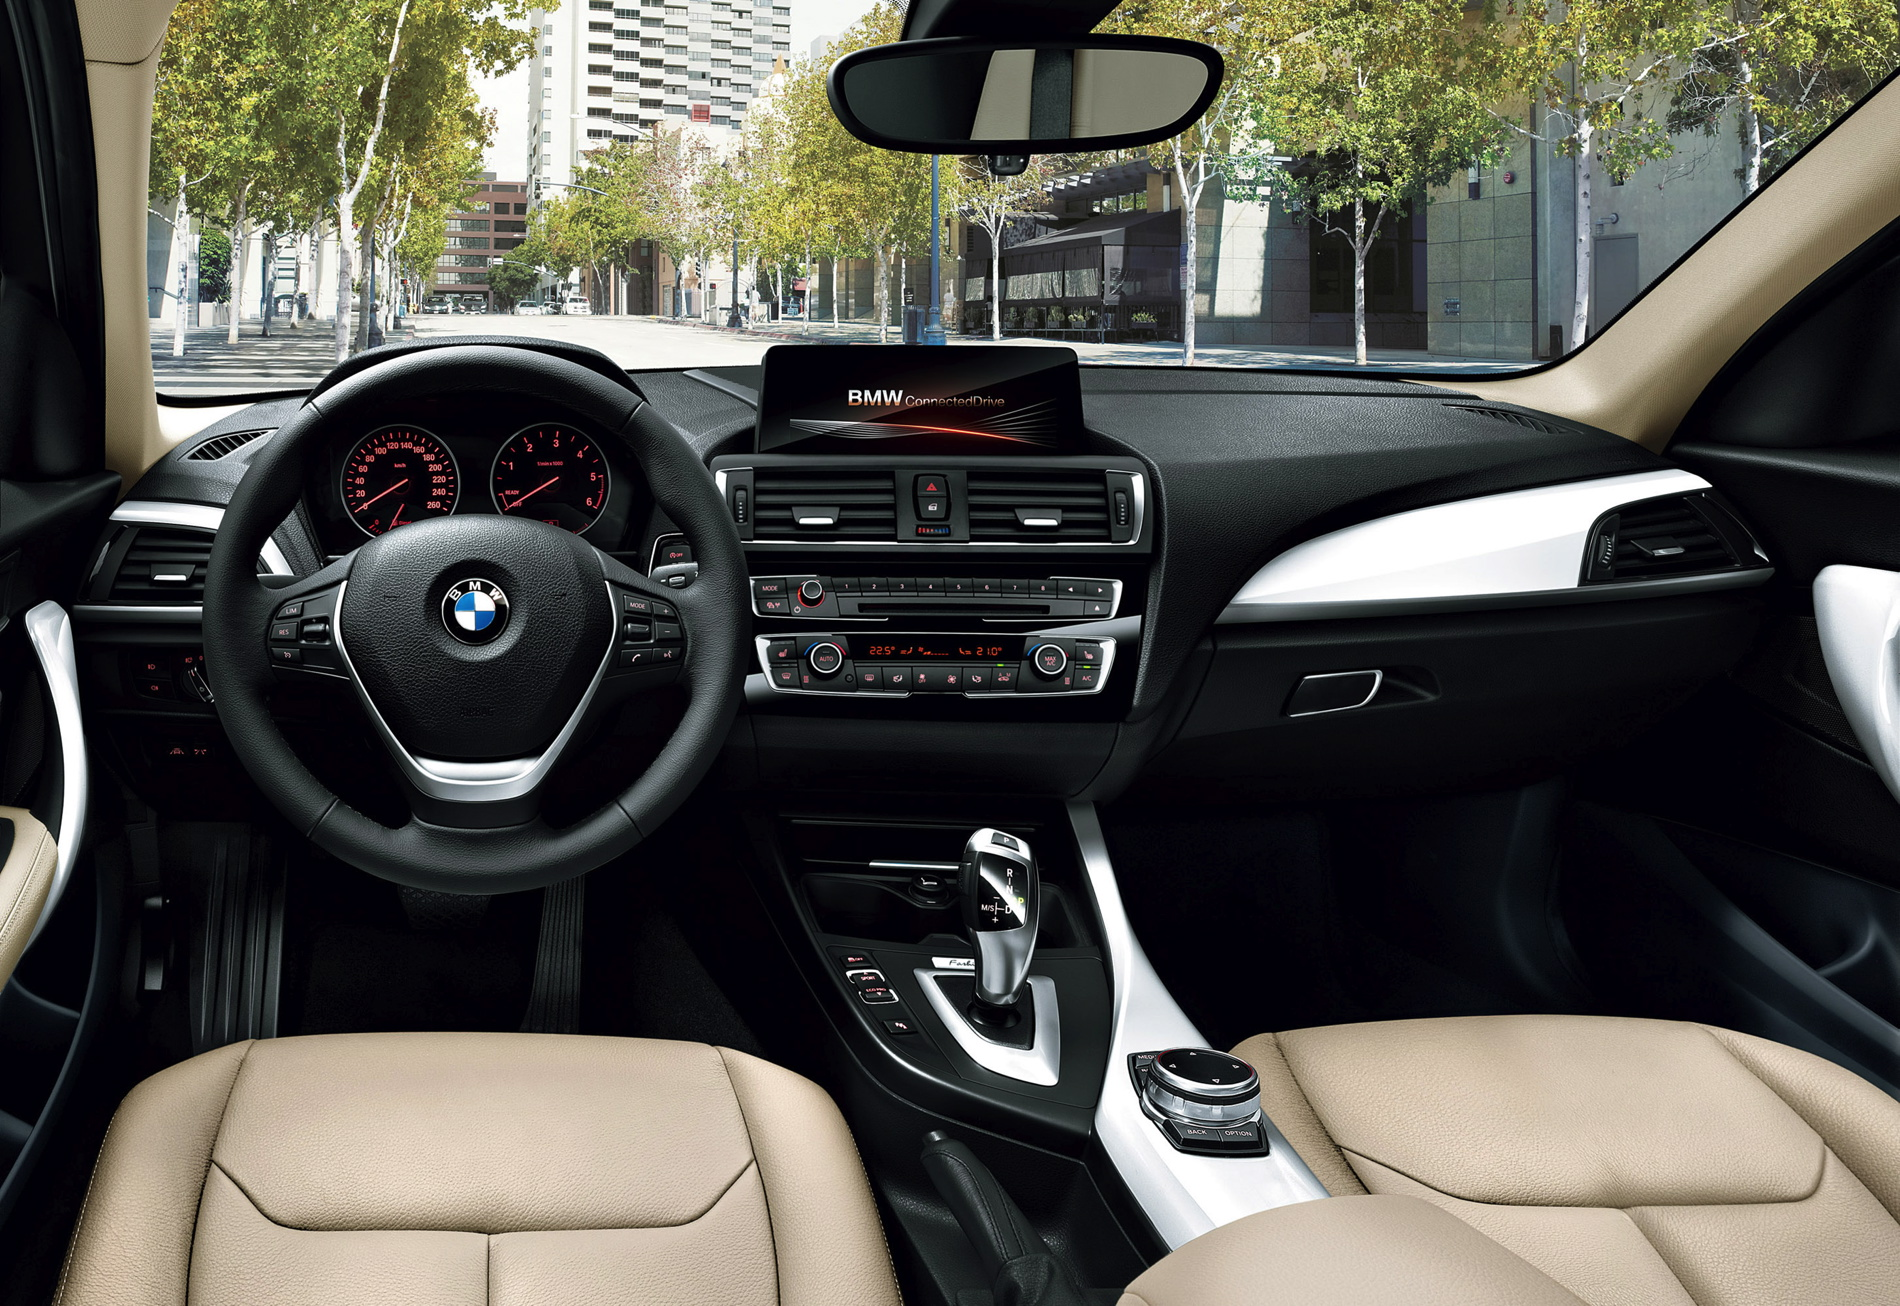 Quot Bmw 118i Fashionista Quot A New Bmw 1 Series Limited Edition